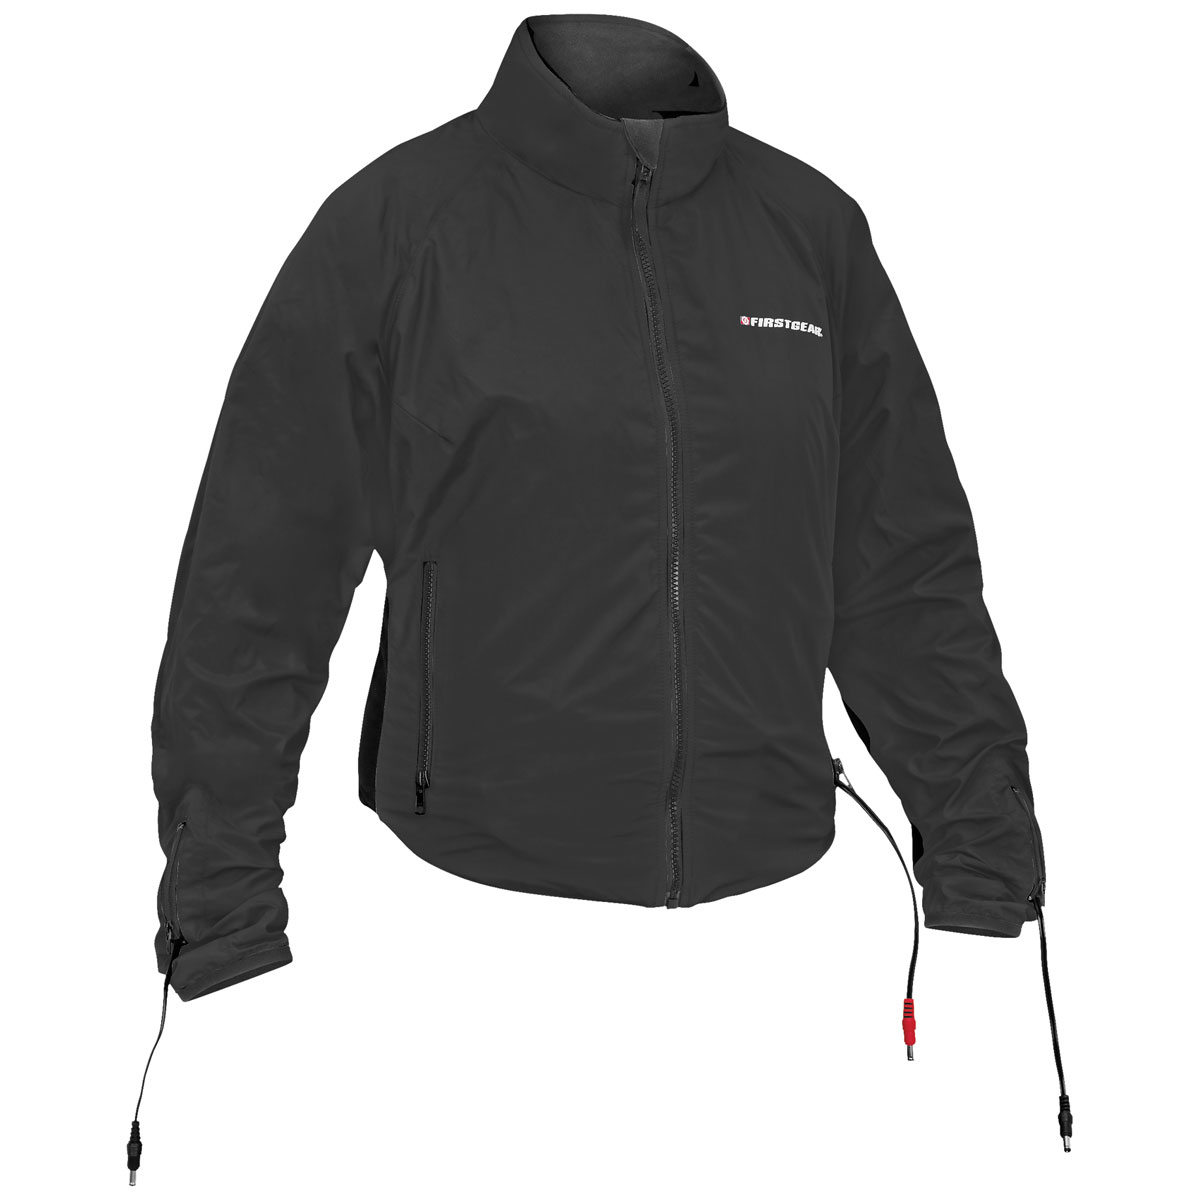 Firstgear Women's 90-Watt Heated Black Jacket Liner